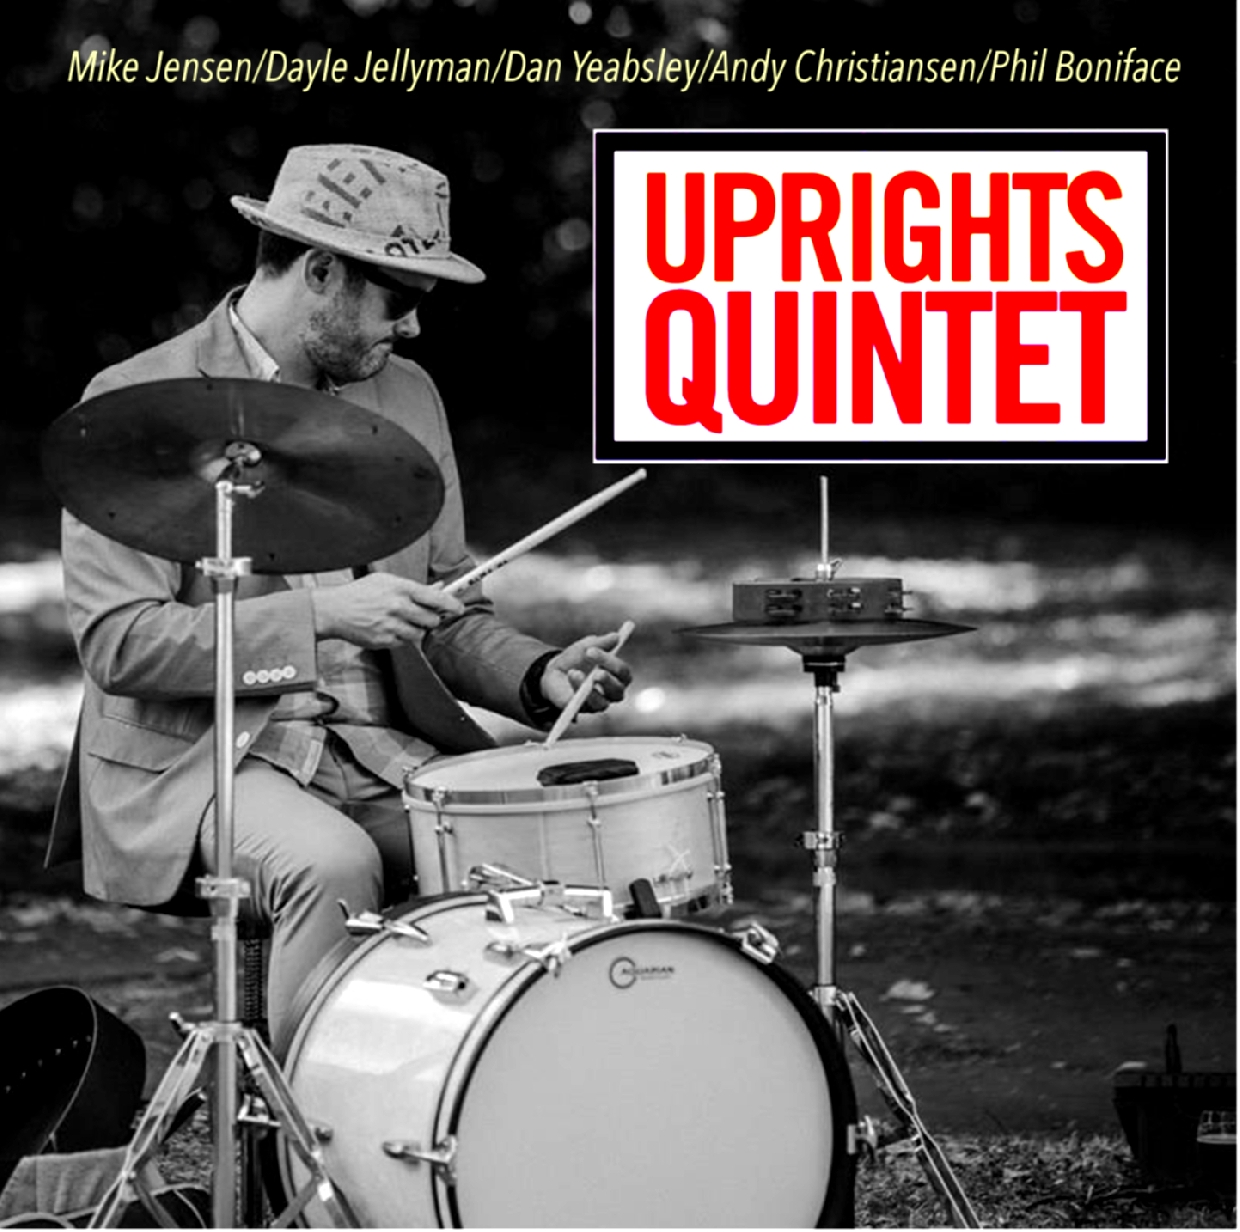 Uprights Quintet at Late Lounge